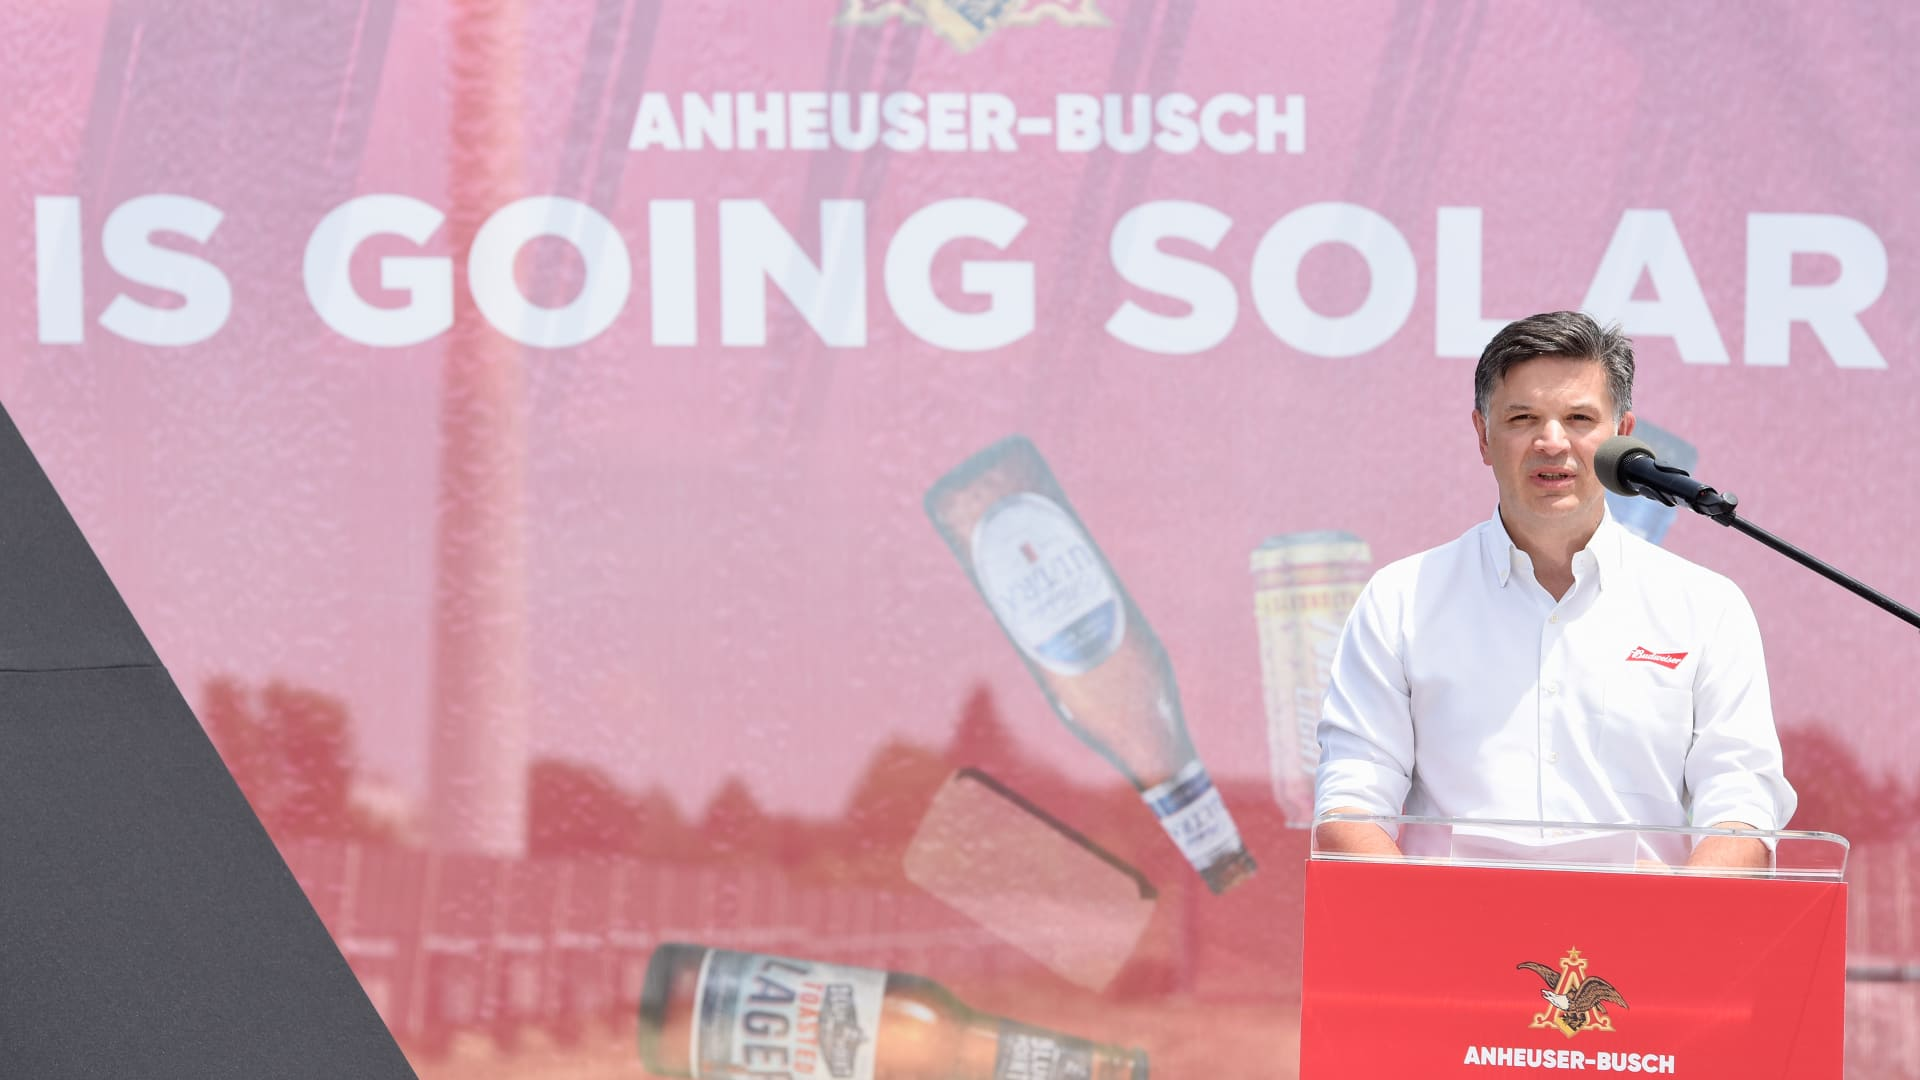 Michel Doukeris, North America CEO & President of Anheuser-Busch, speaks at the signing of a contract between Anheuser-Busch and the sun, at the Fairfield Brewery in Fairfield, California on June 5, 2019.